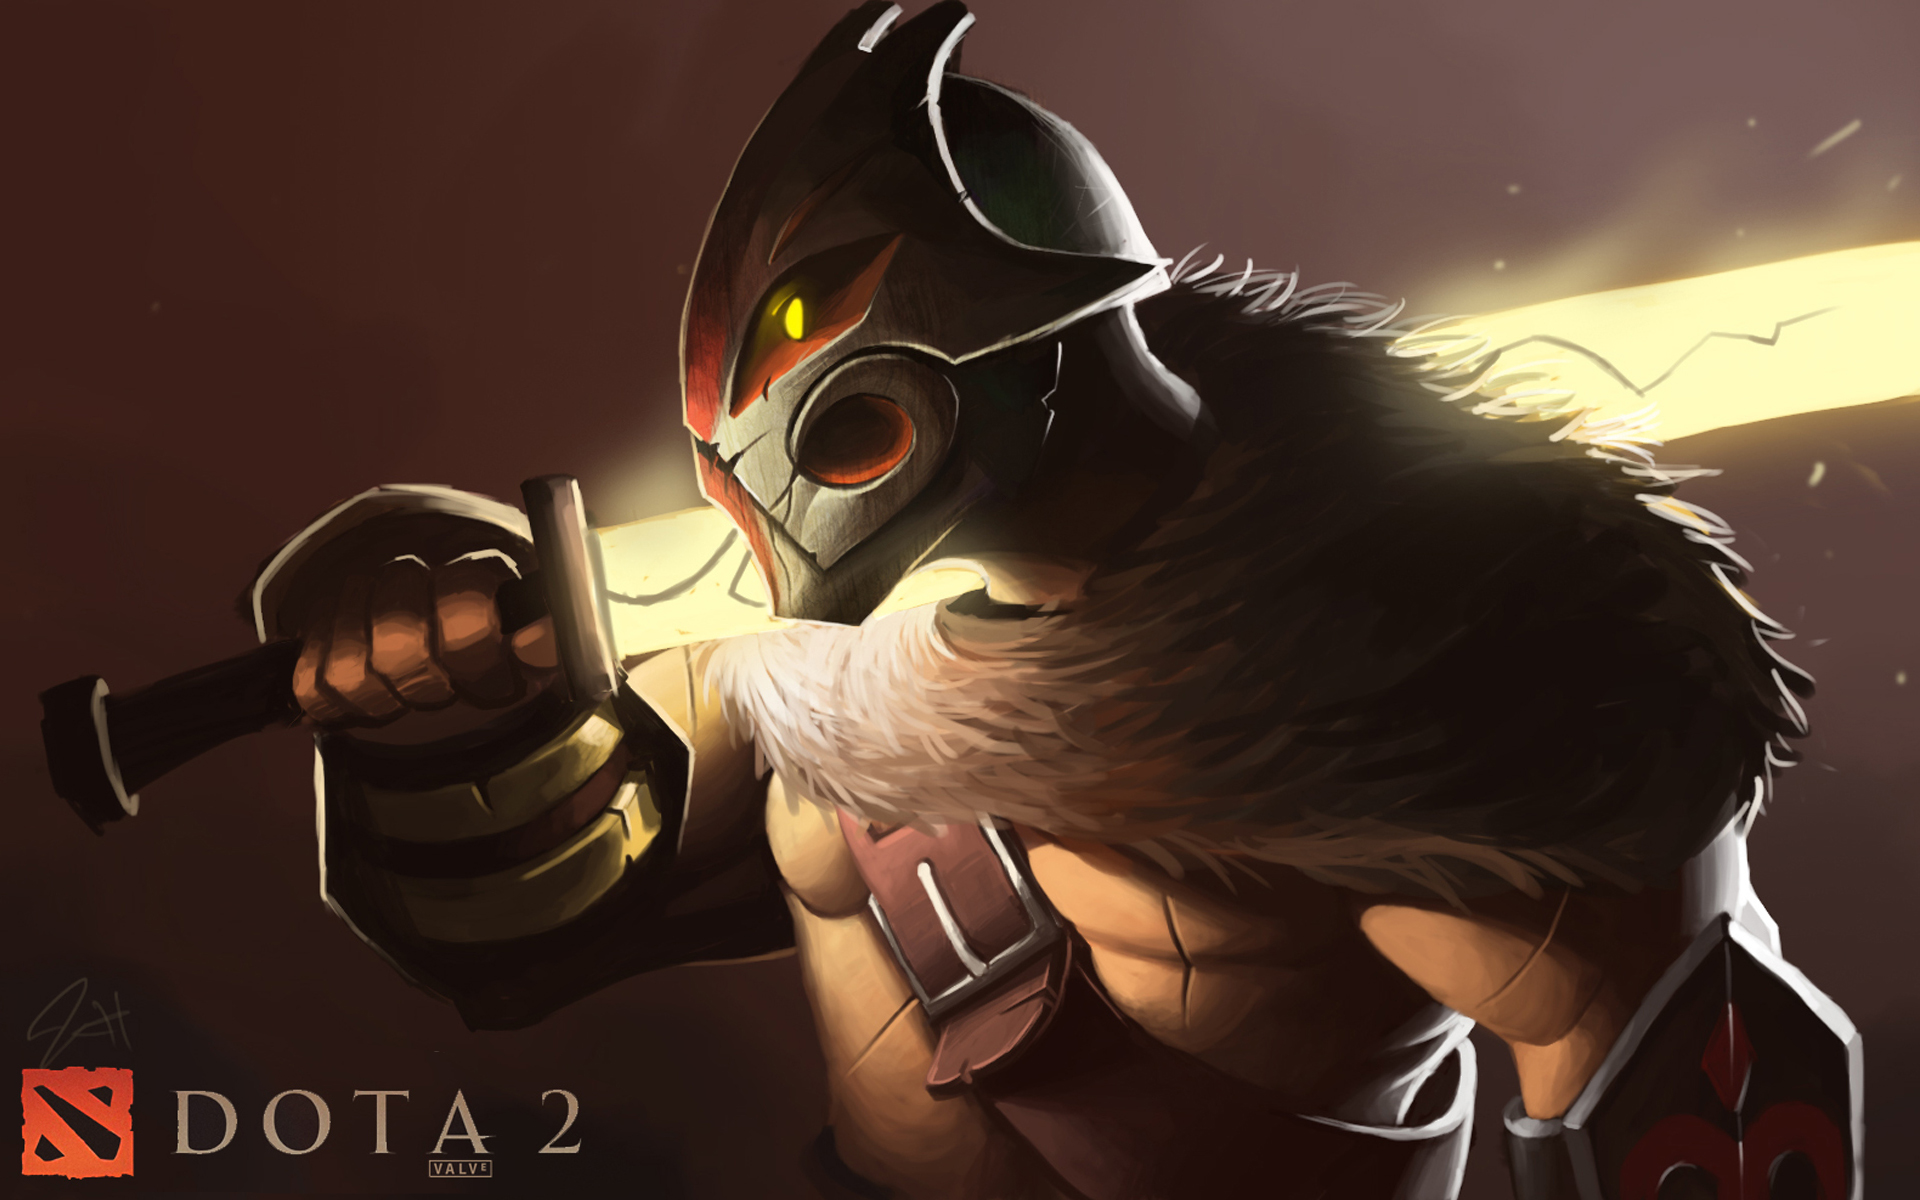 dota 2 game background - photo #27